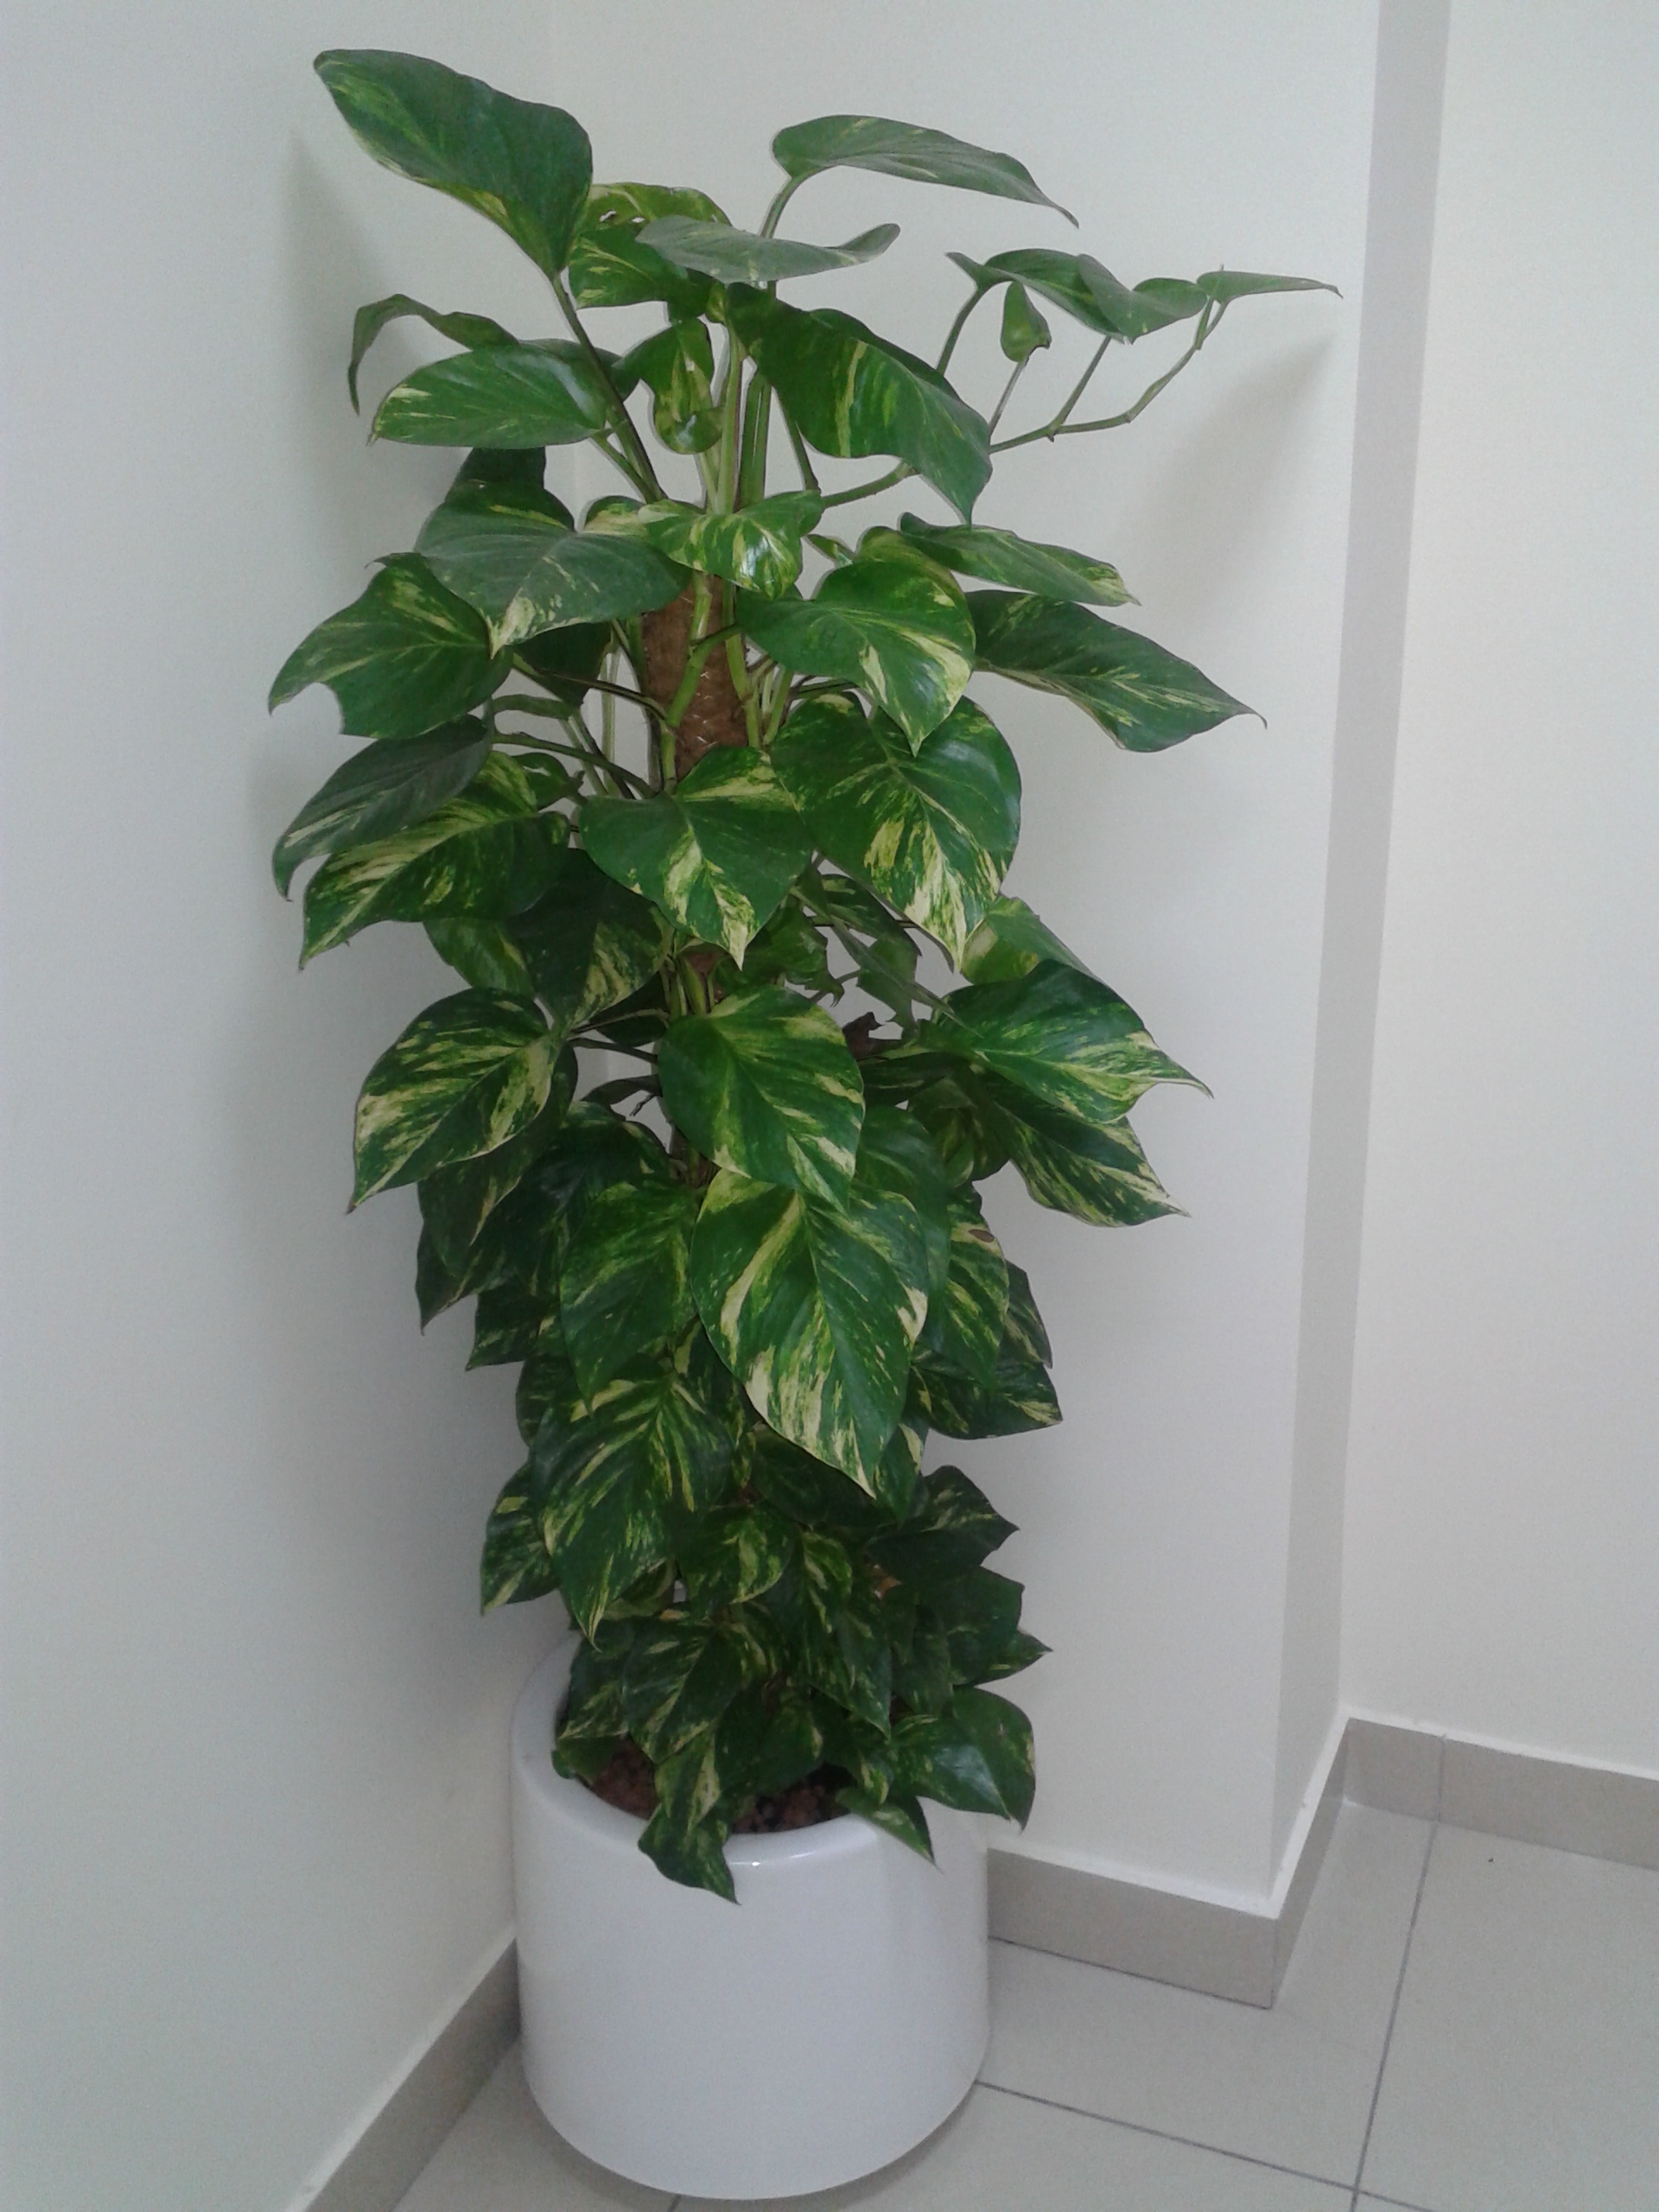 landscaping company dubai | indoor plants u.a.e | outdoor plants Artificial Office Plants